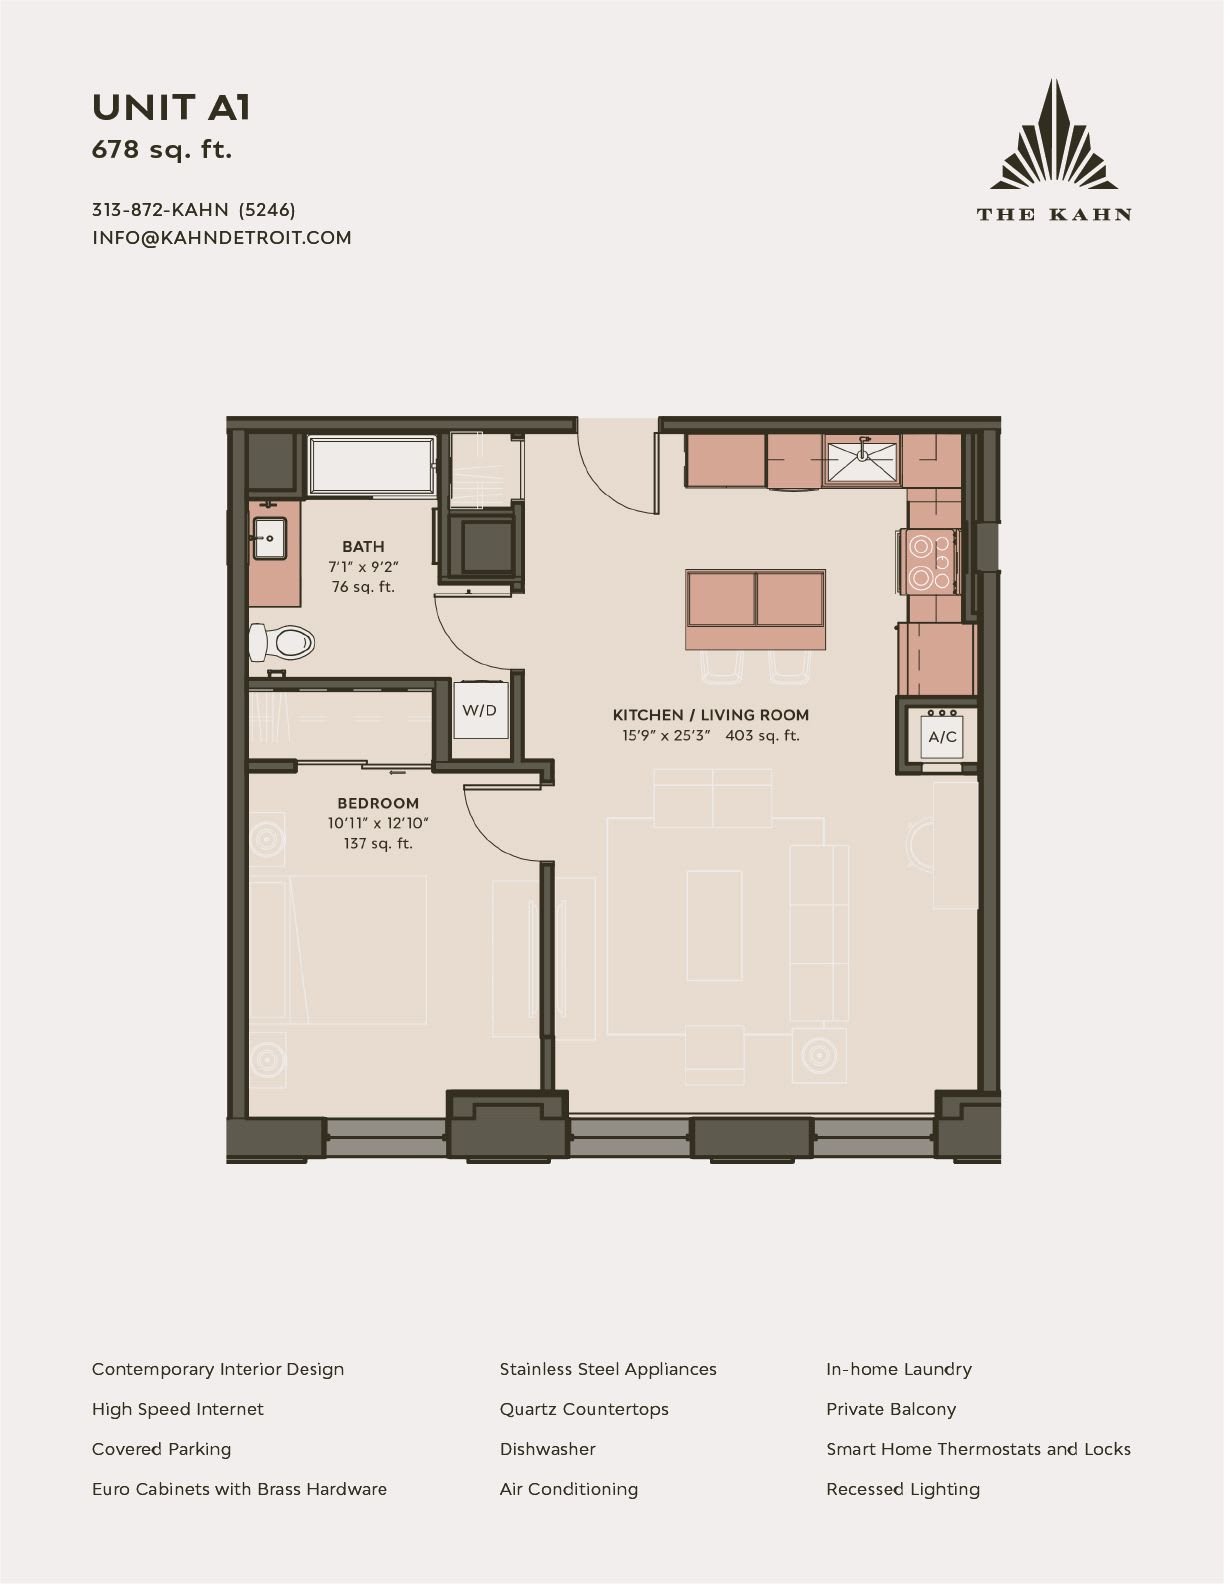 A1 floor plan image at The Kahn in Detroit, Michigan